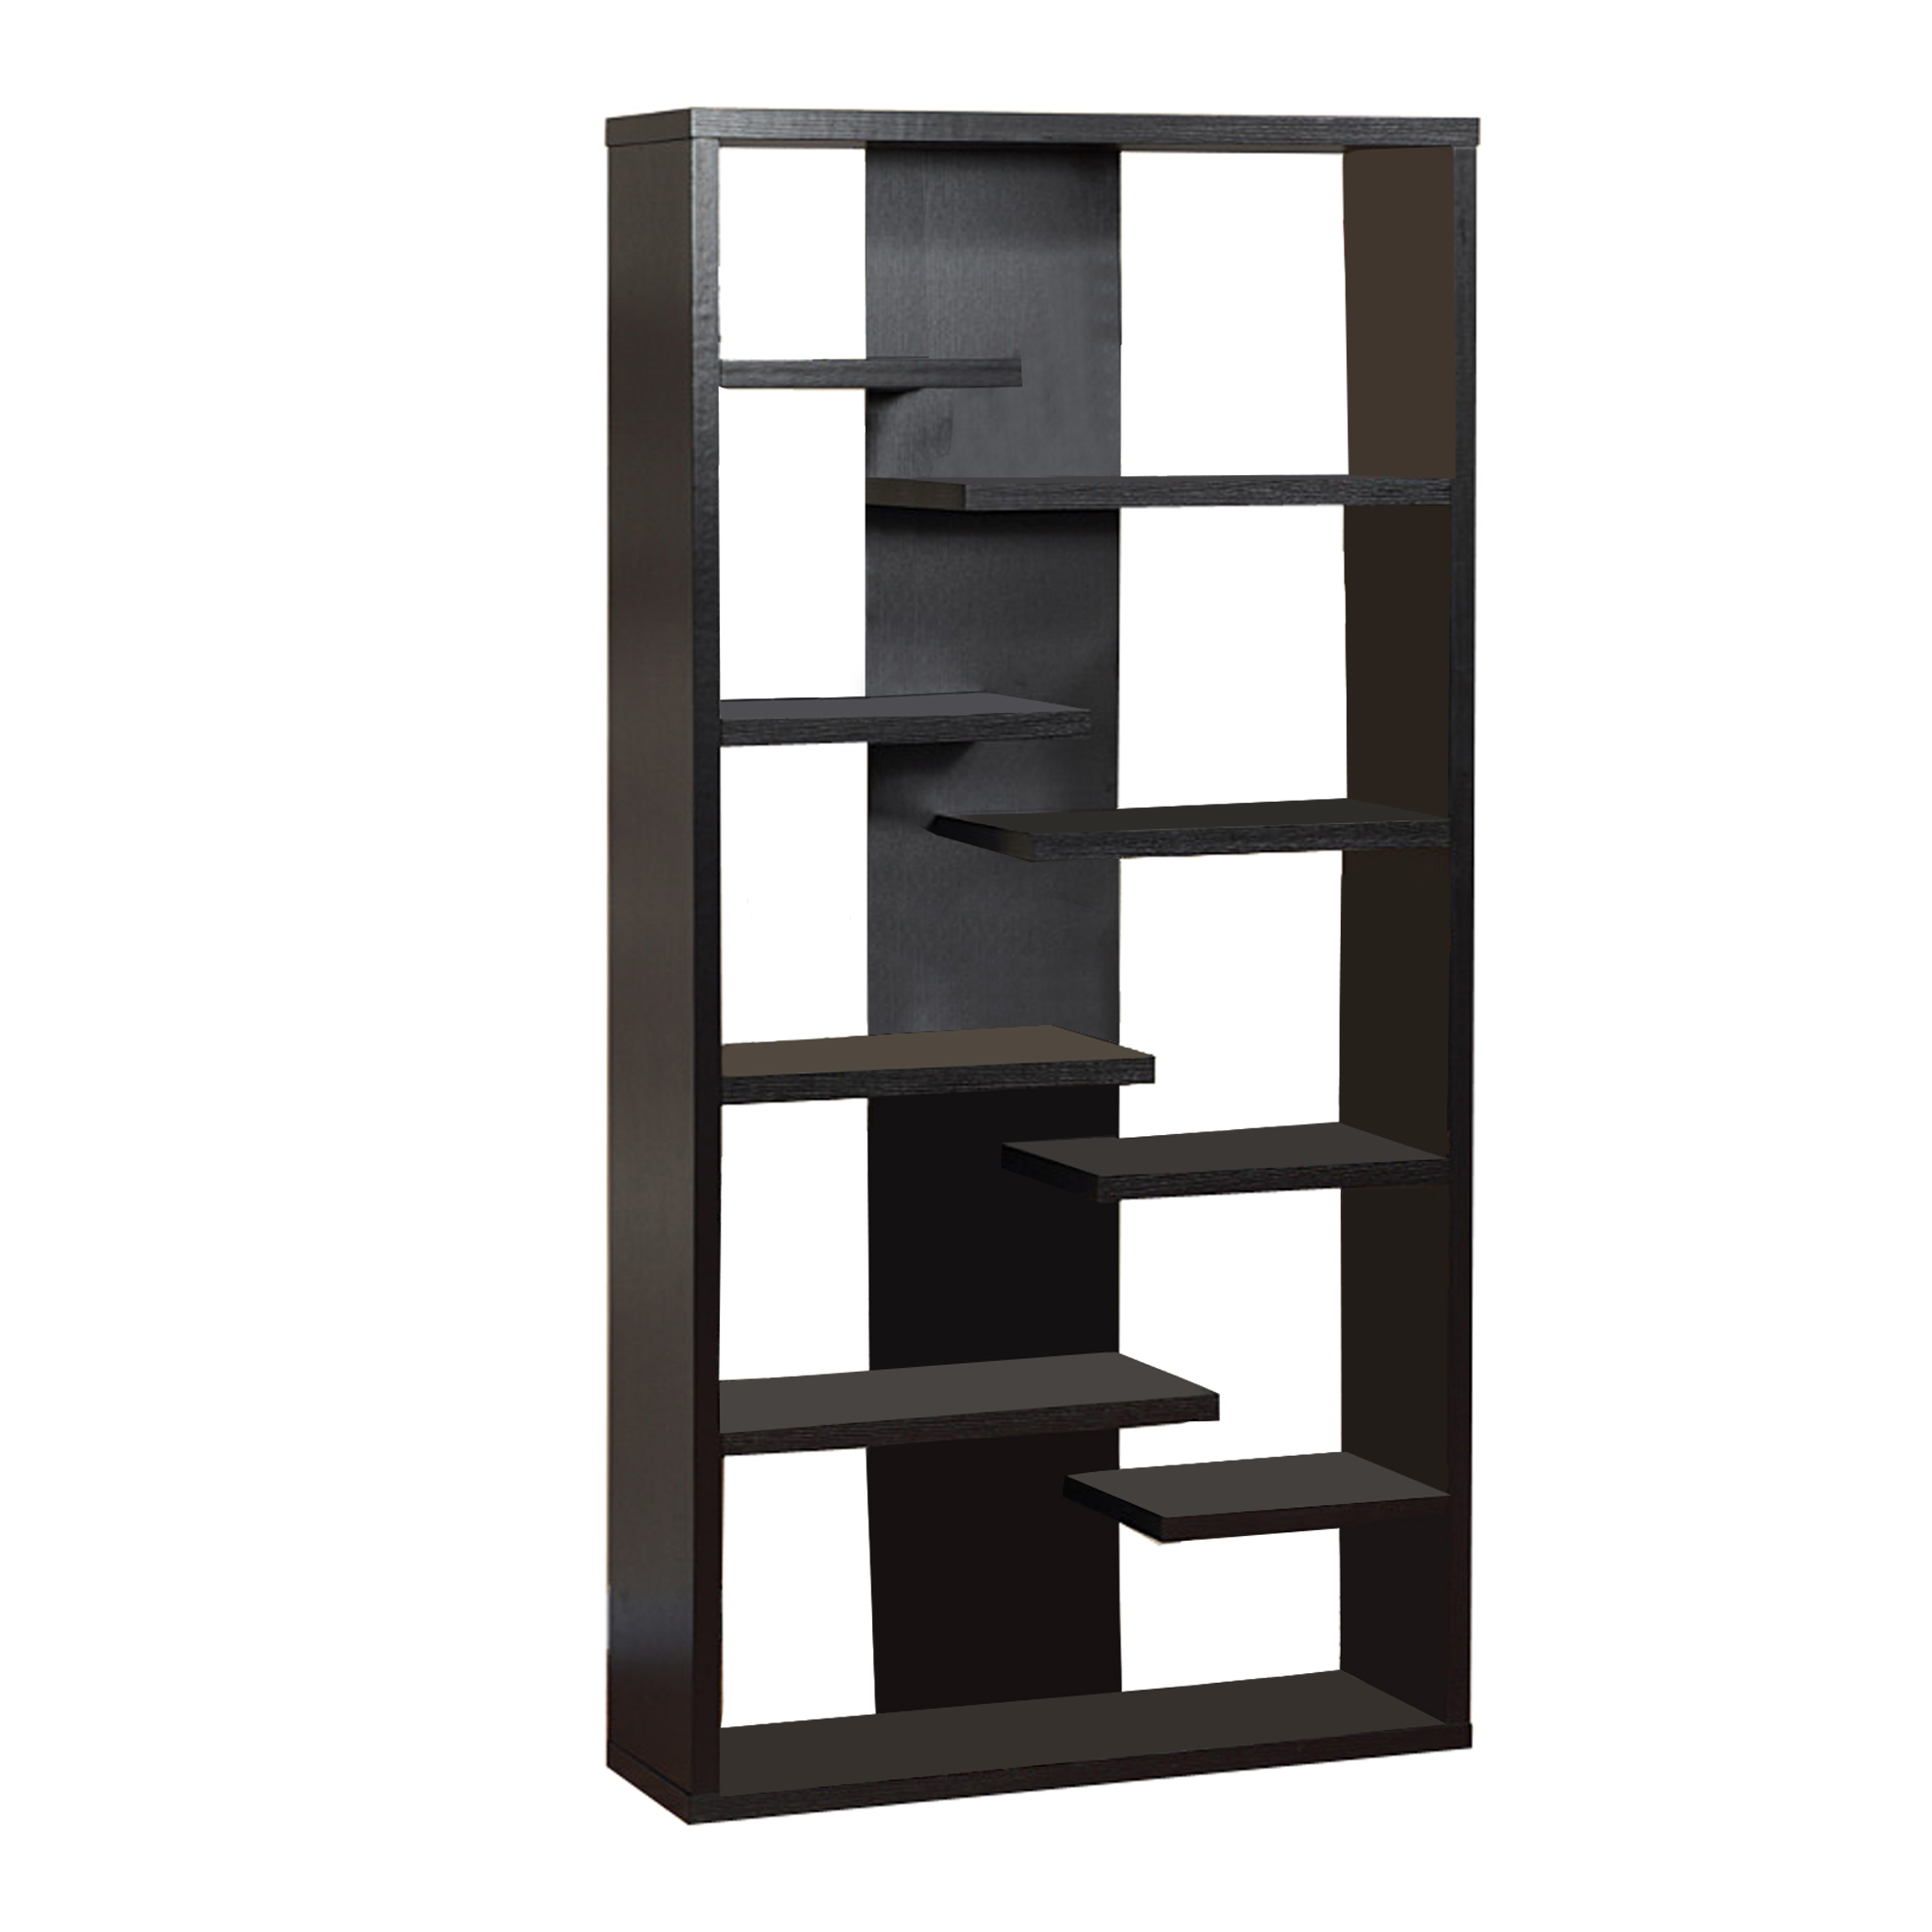 Well- Designed Contemporary Bookcase, Black